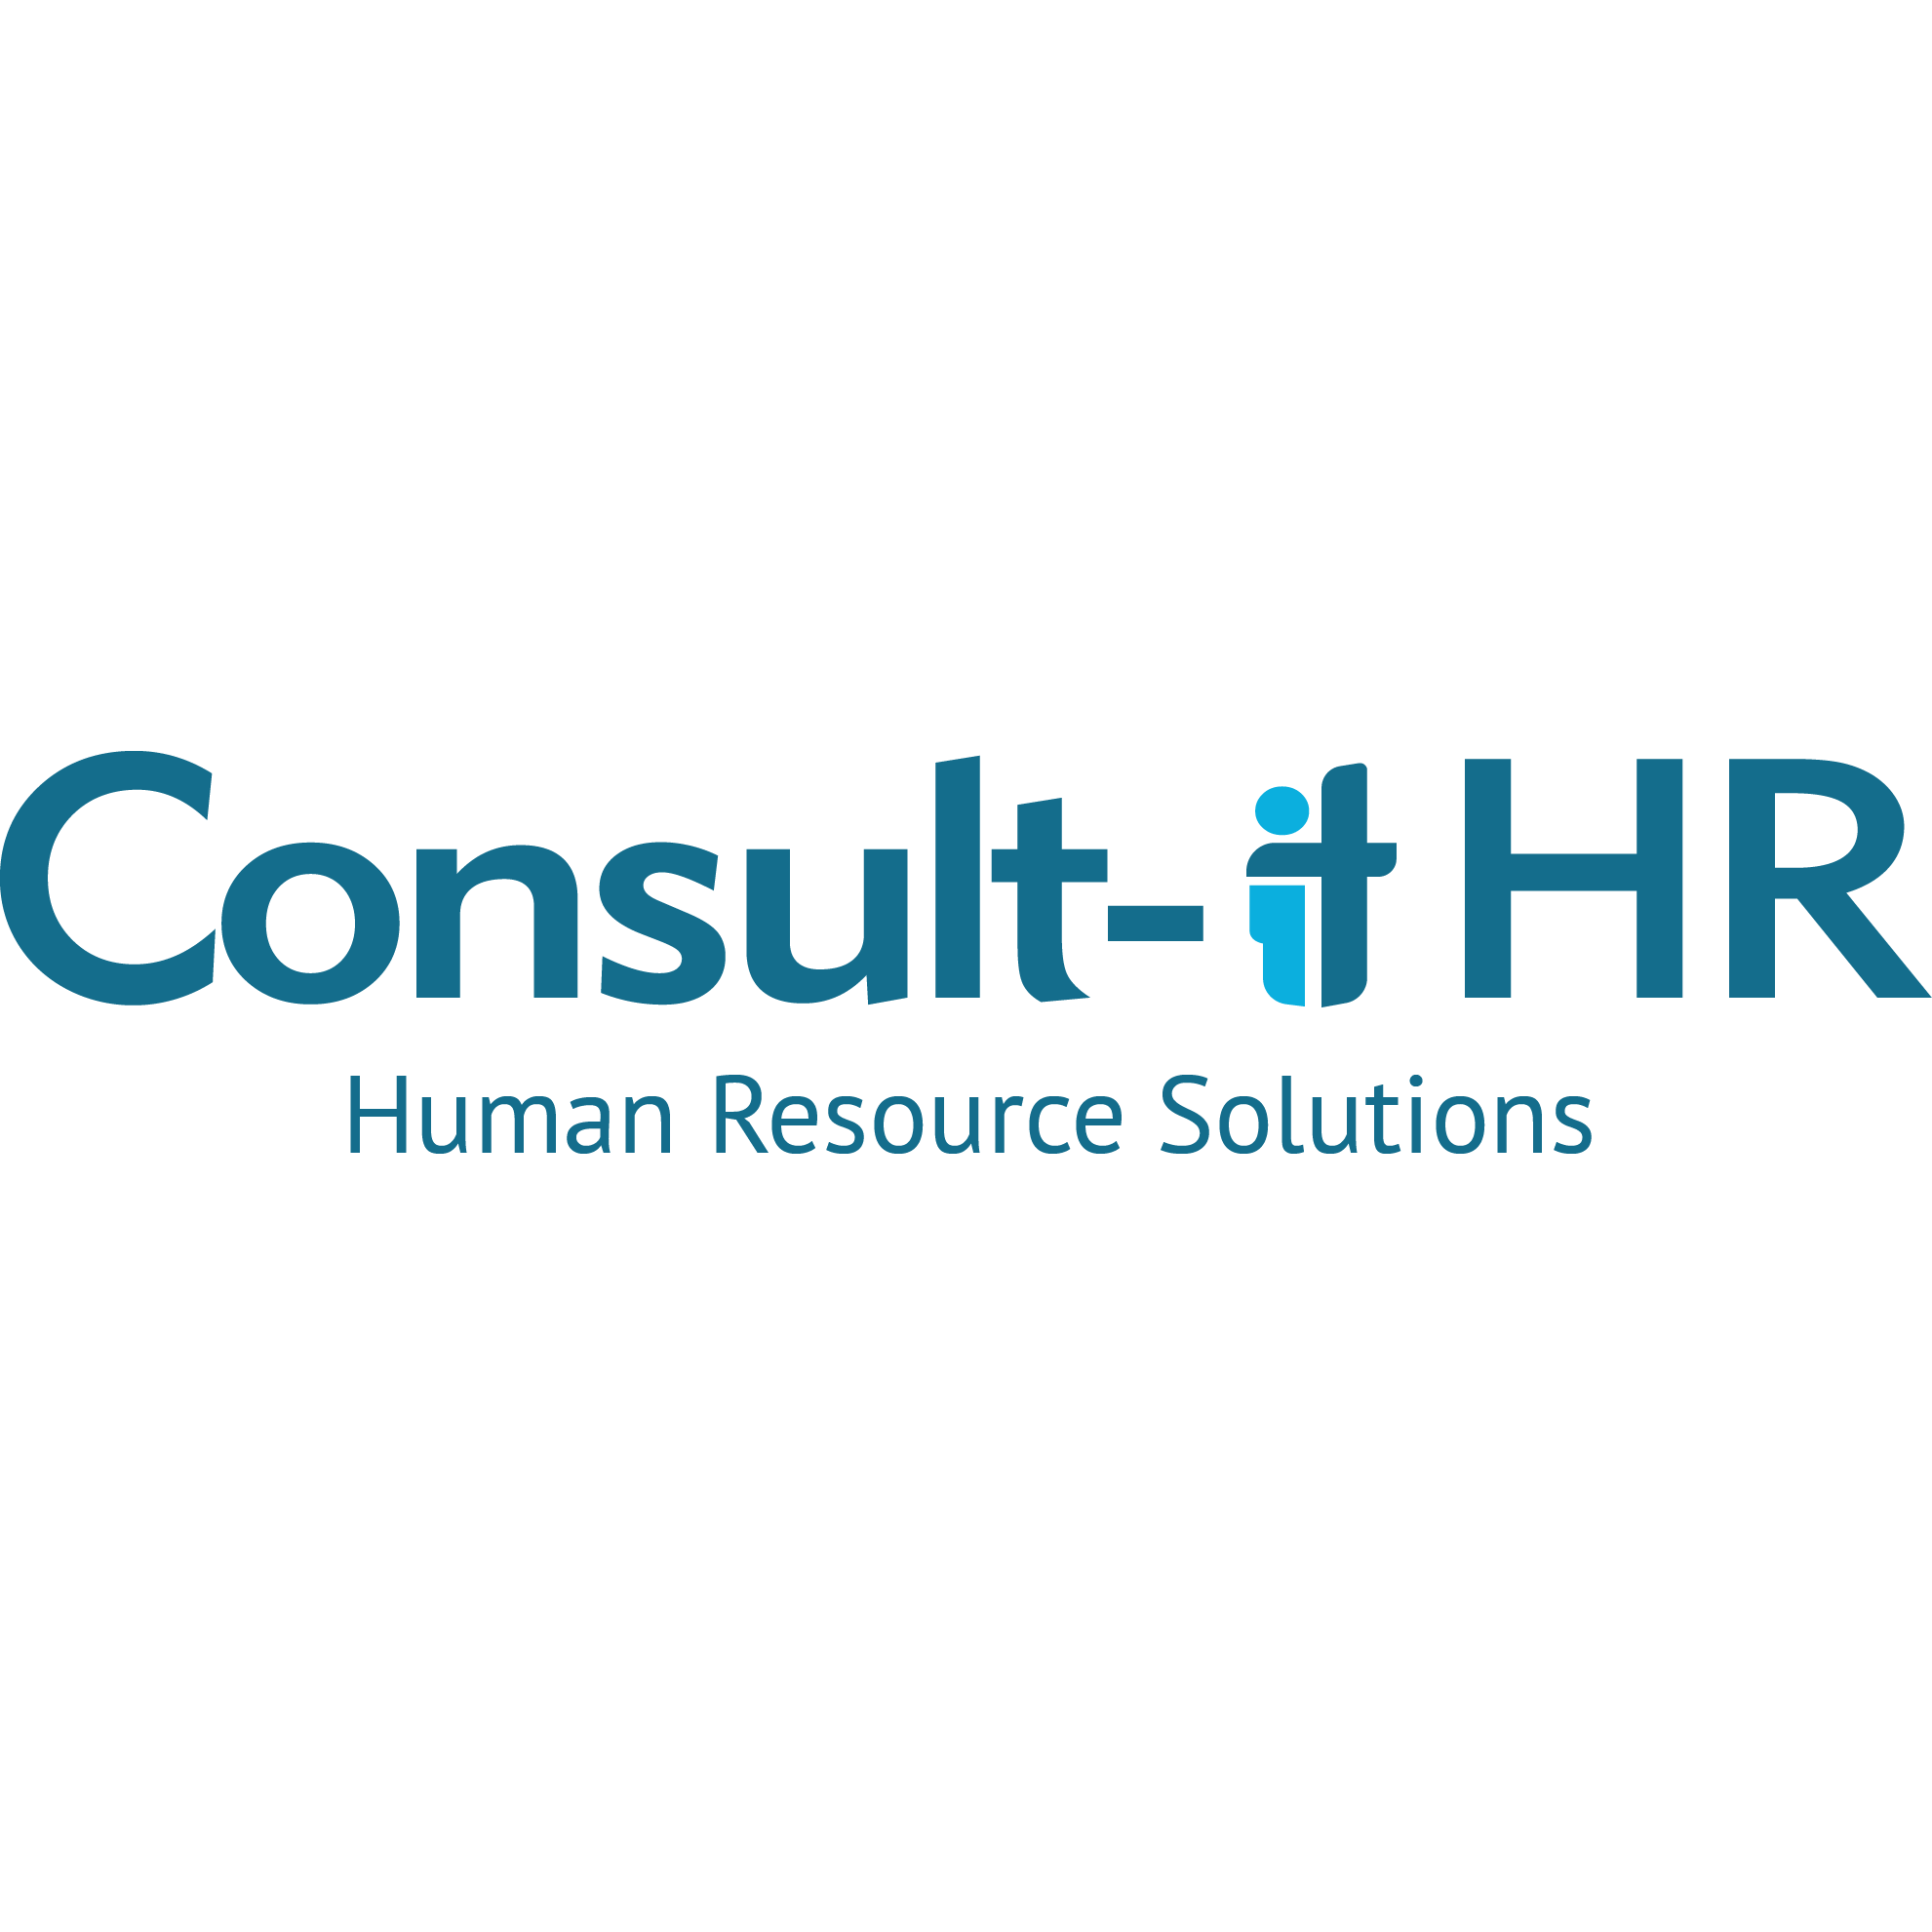 Contsult-it HR